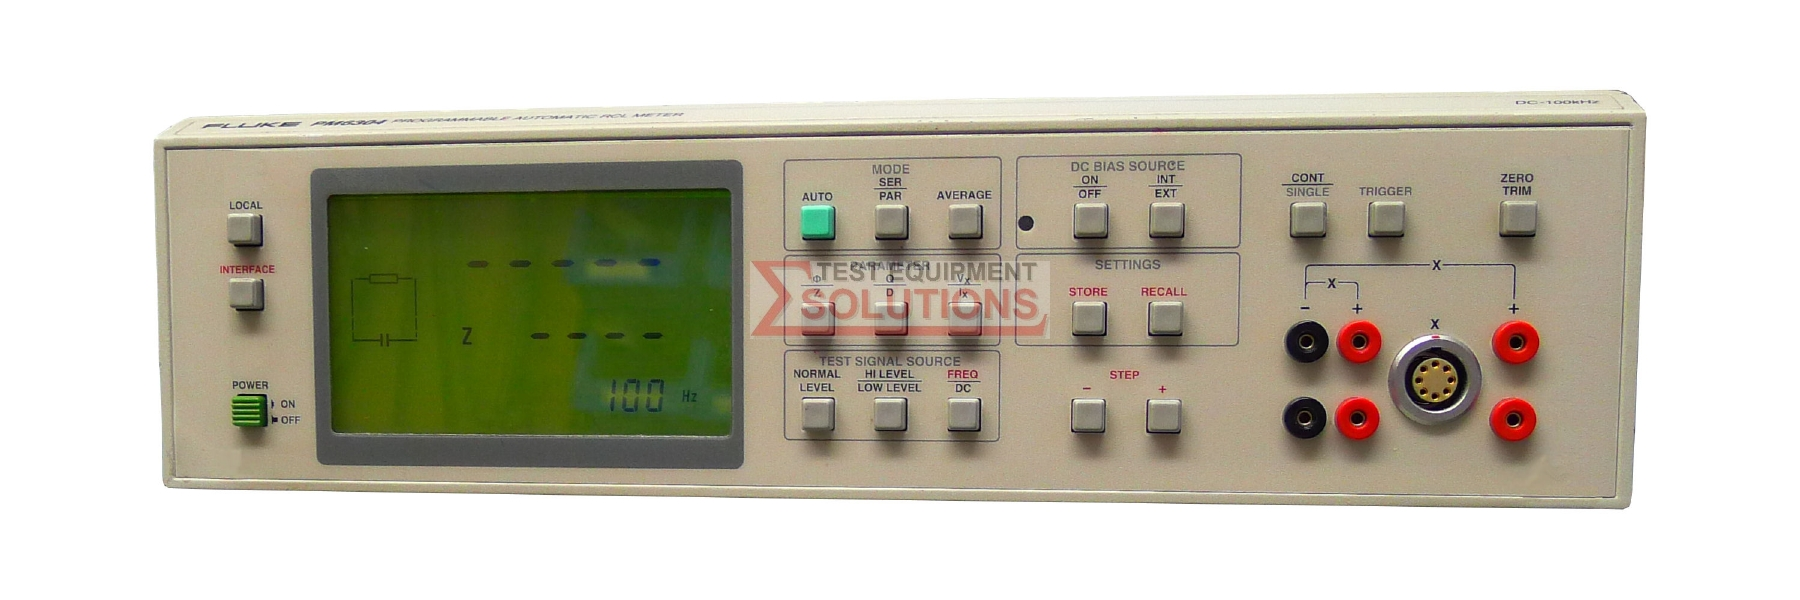 Philips PM6304 100KHz LCR Meter